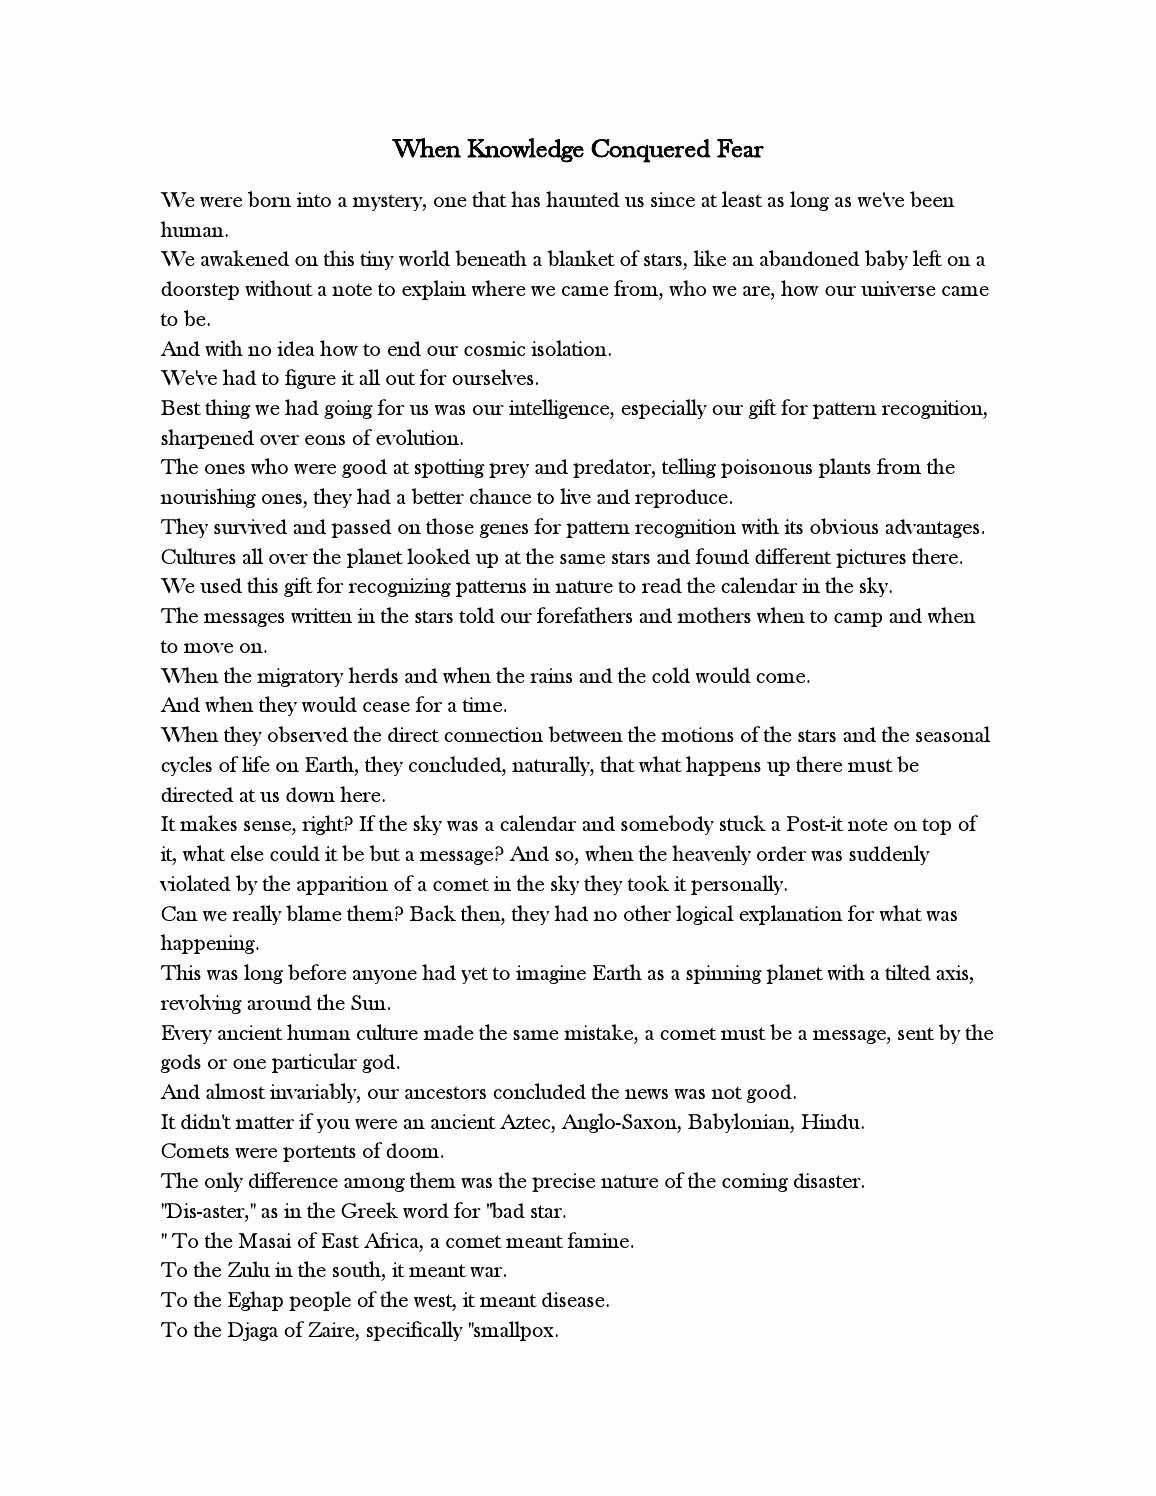 Cosmos Episode 1 Worksheet Answers New Cosmos Episode 2 Worksheet Answer Key